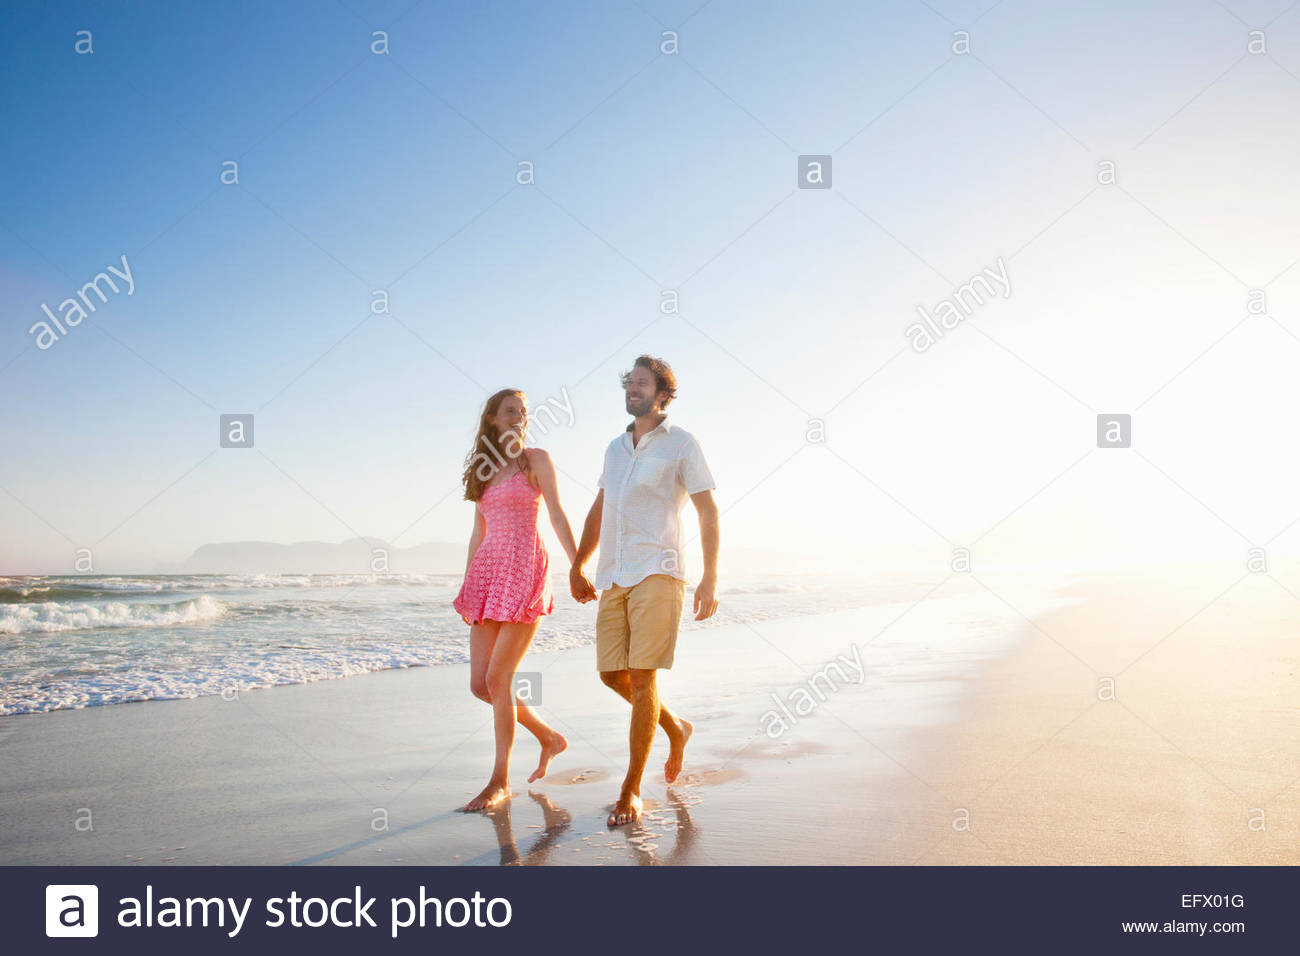 Smiling couple, holding hands, walking along sunny beach - Stock Image